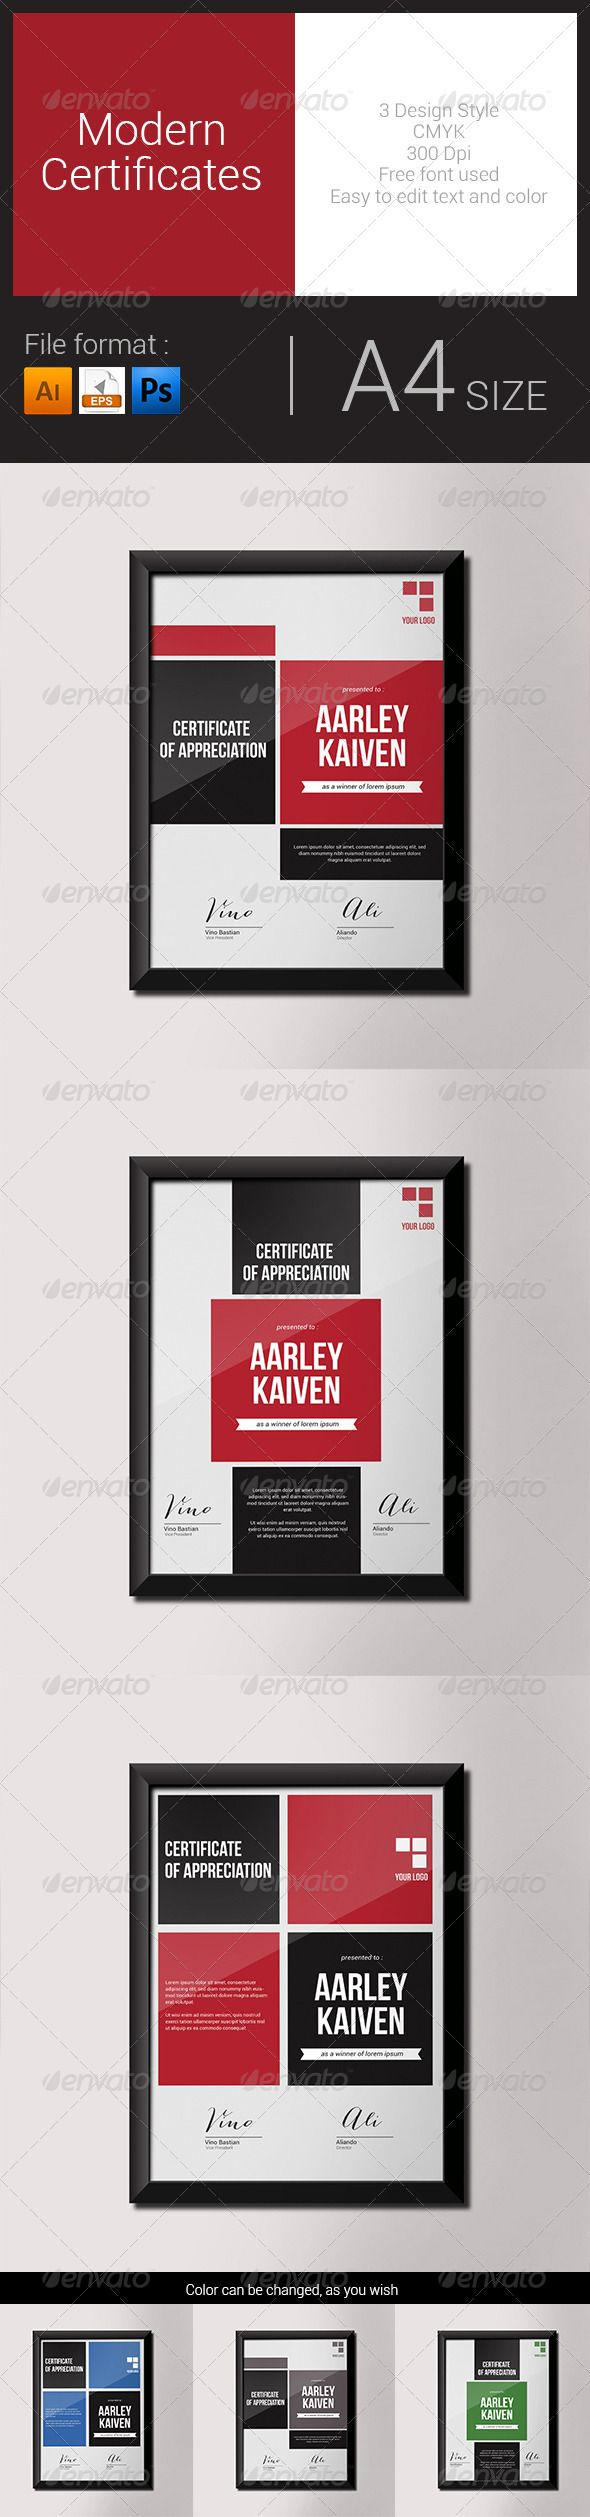 11 best Certificates   Employee Recognition images on Pinterest     Modern Certificates